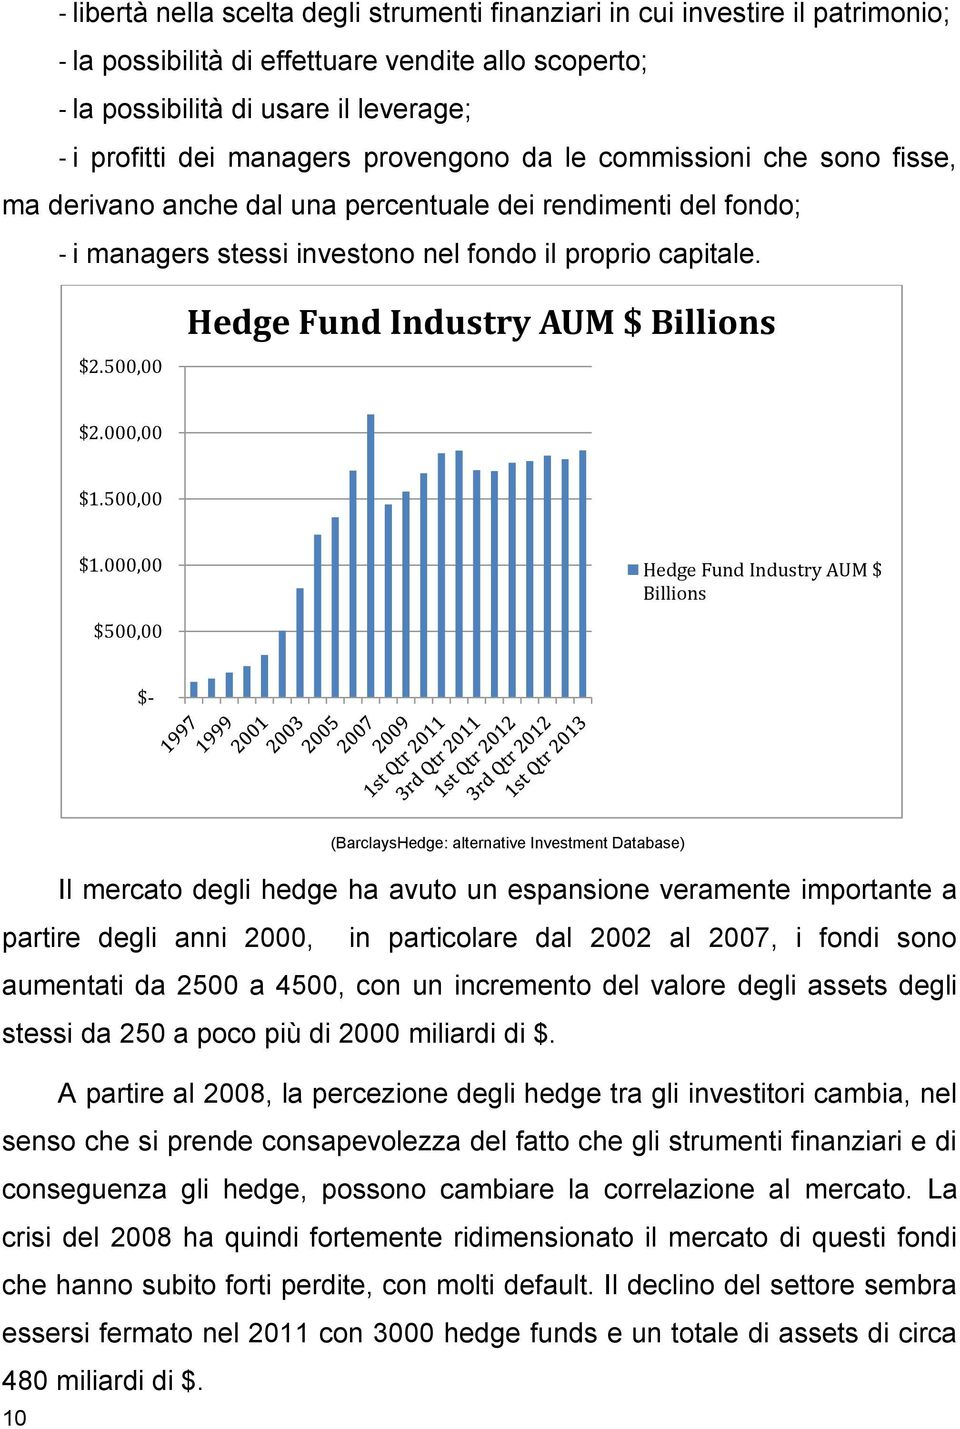 5, Hedge Fund Industry AUM $ Billions $2., $1.5, $1.